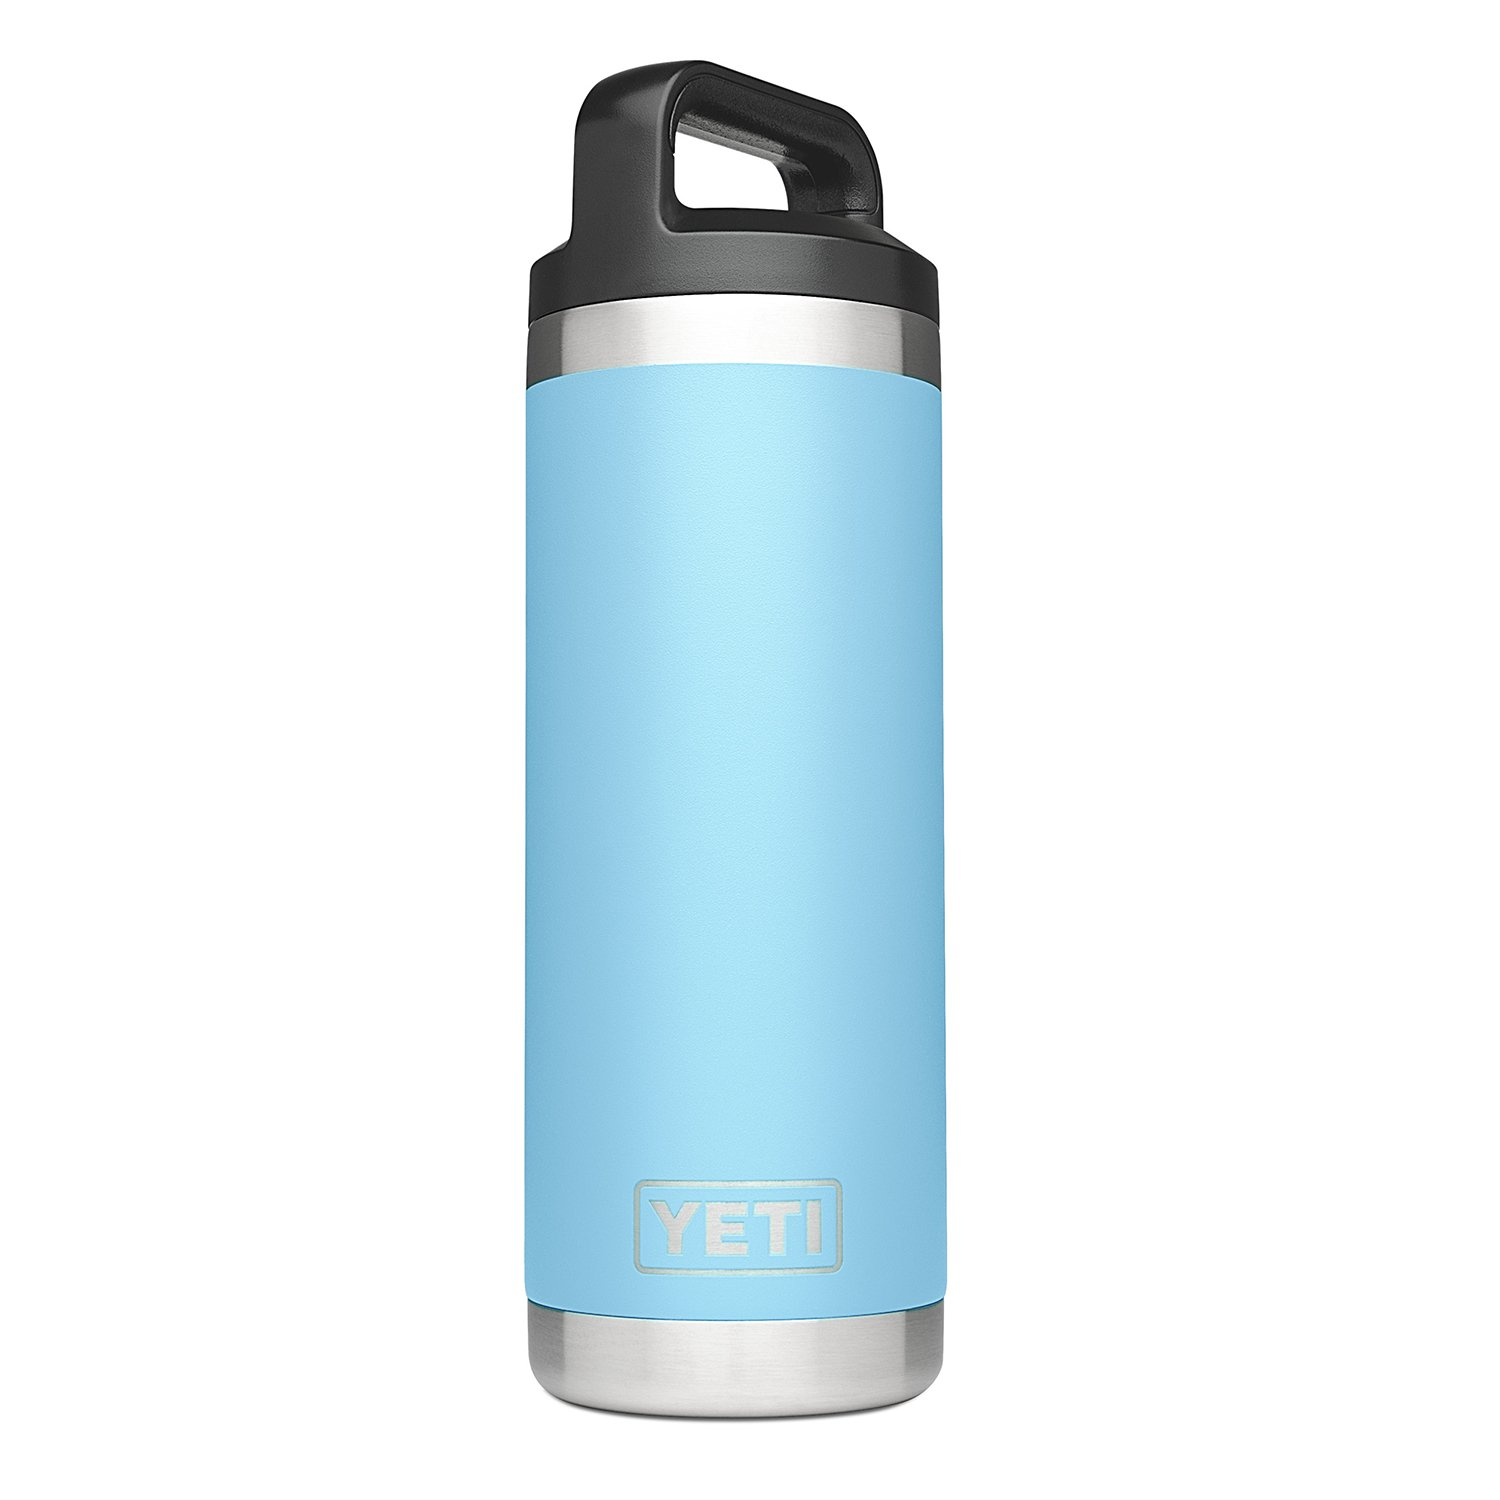 YETI Rambler 18oz Bottle, Sky Blue